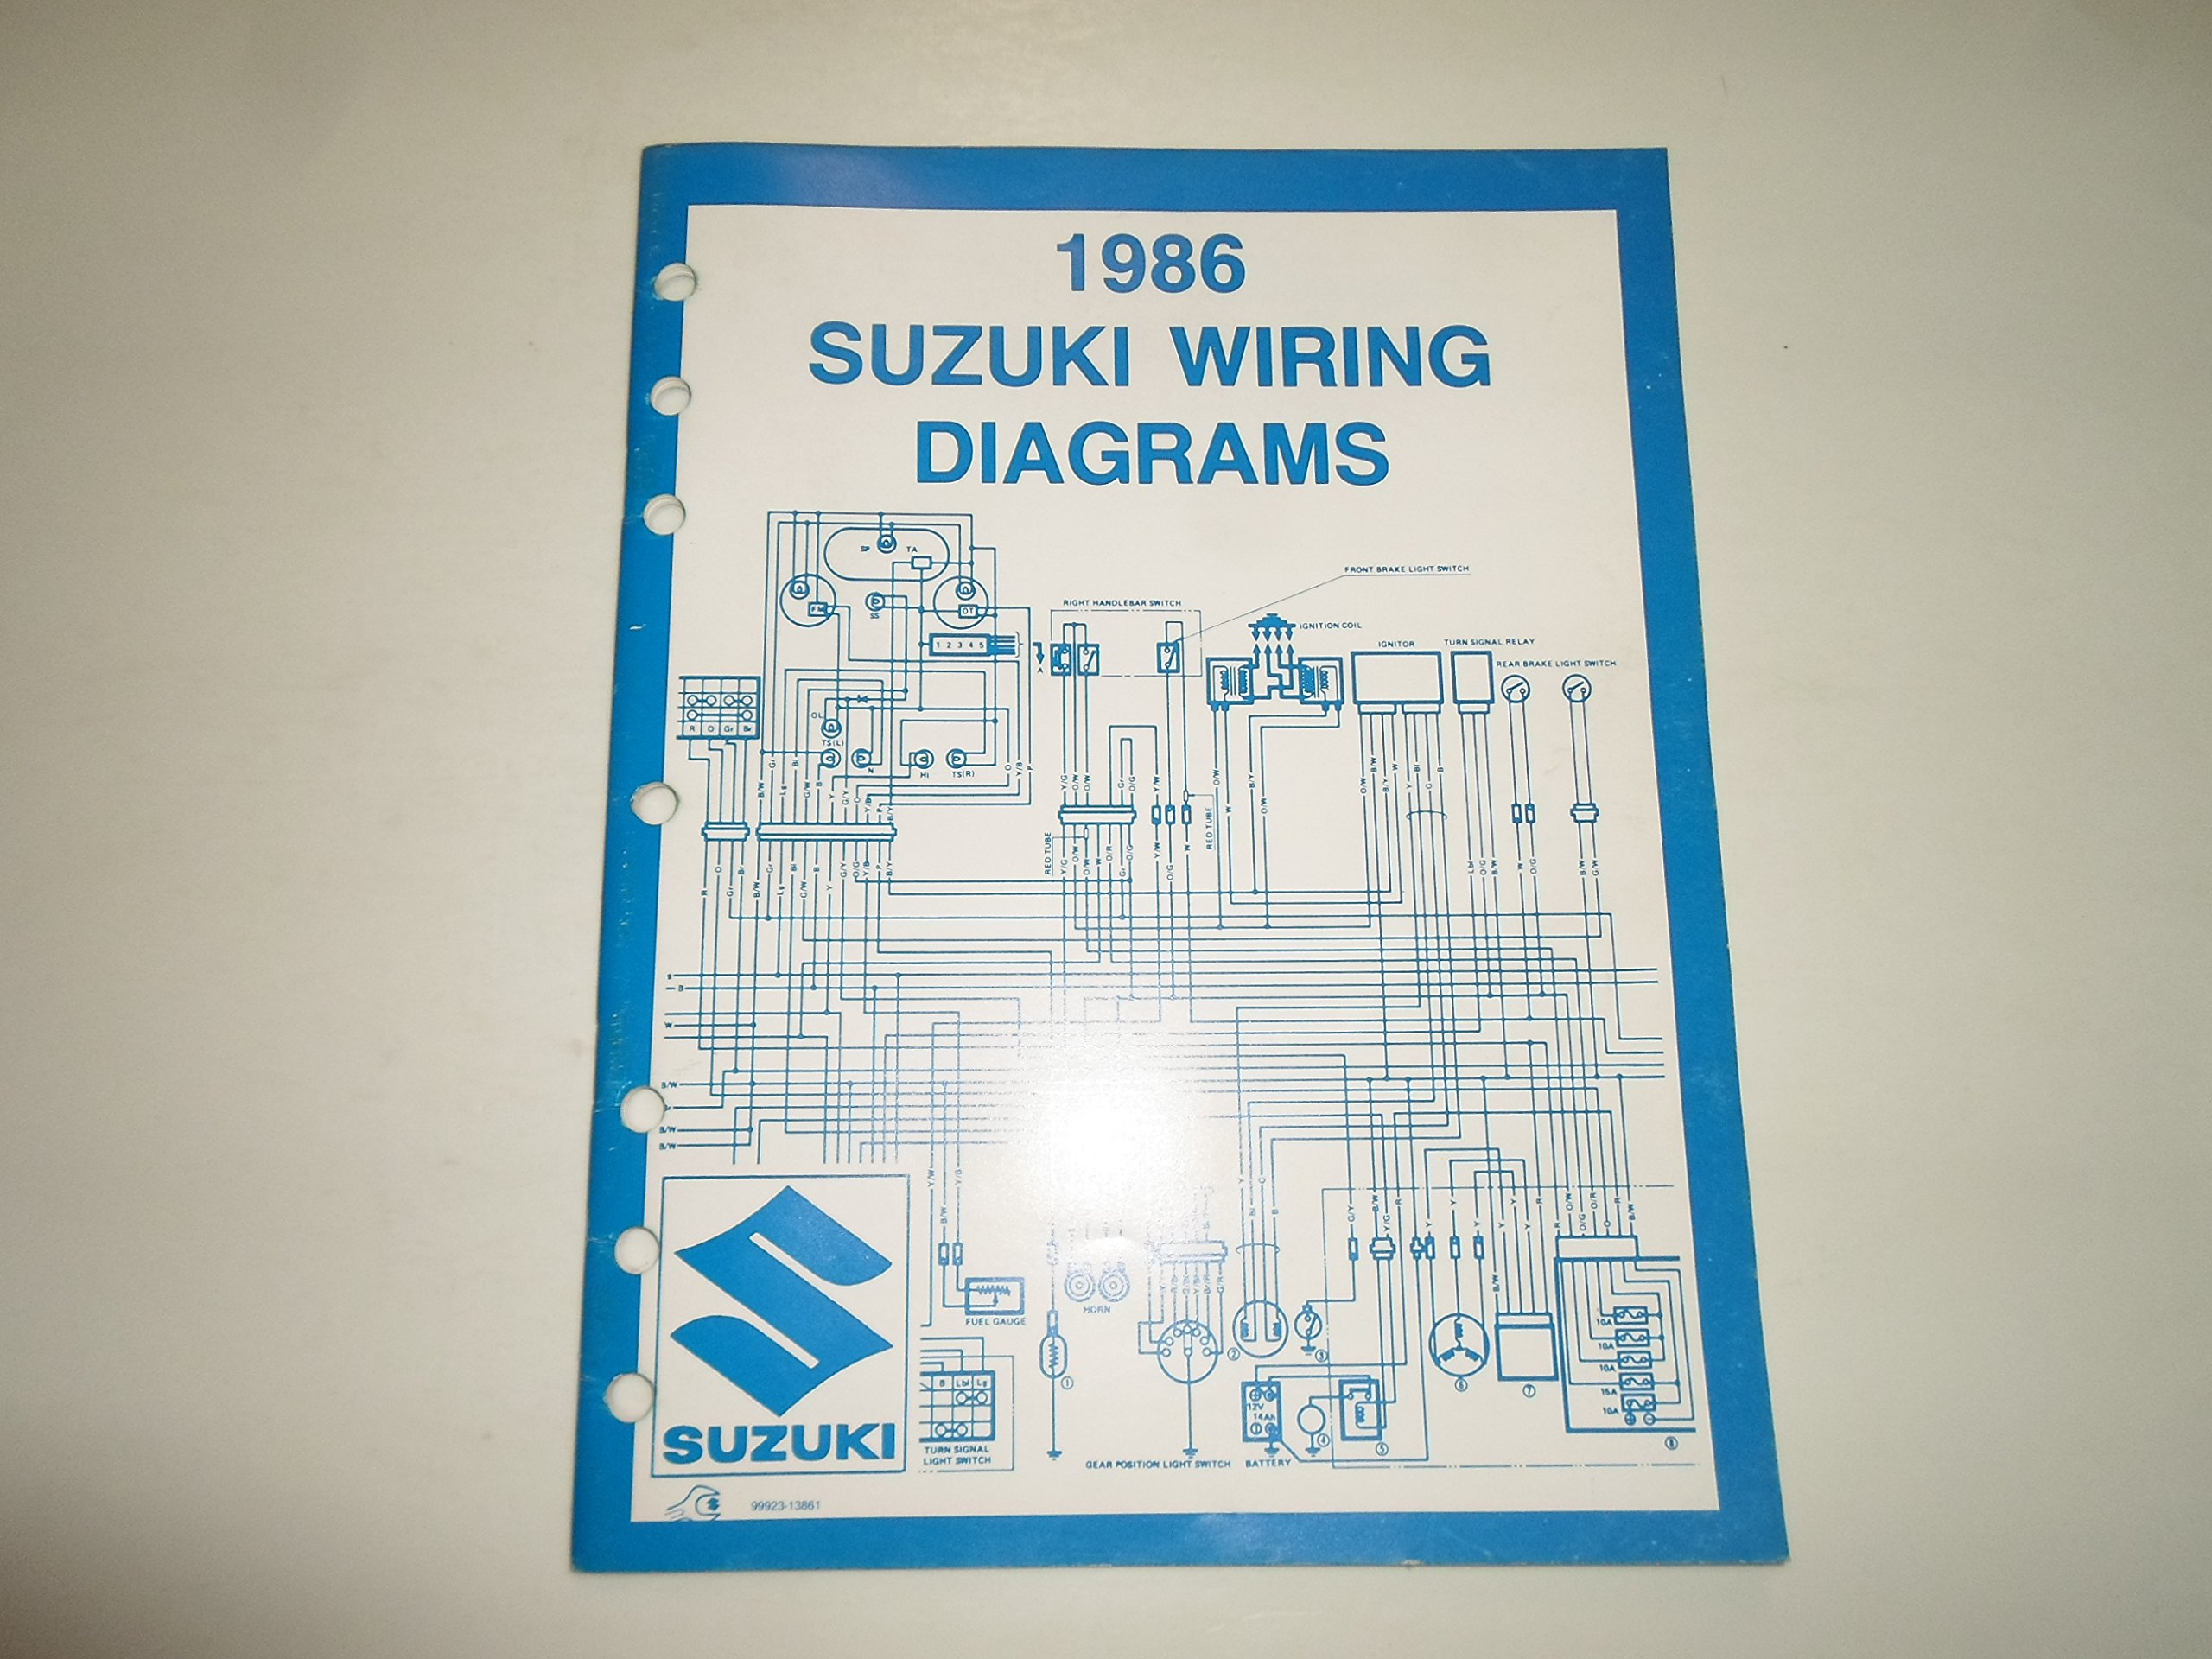 1981 Rm 250 Wire Diagram Wiring Library Suzuki For 300 House Symbols U2022 King Quad Carburetor